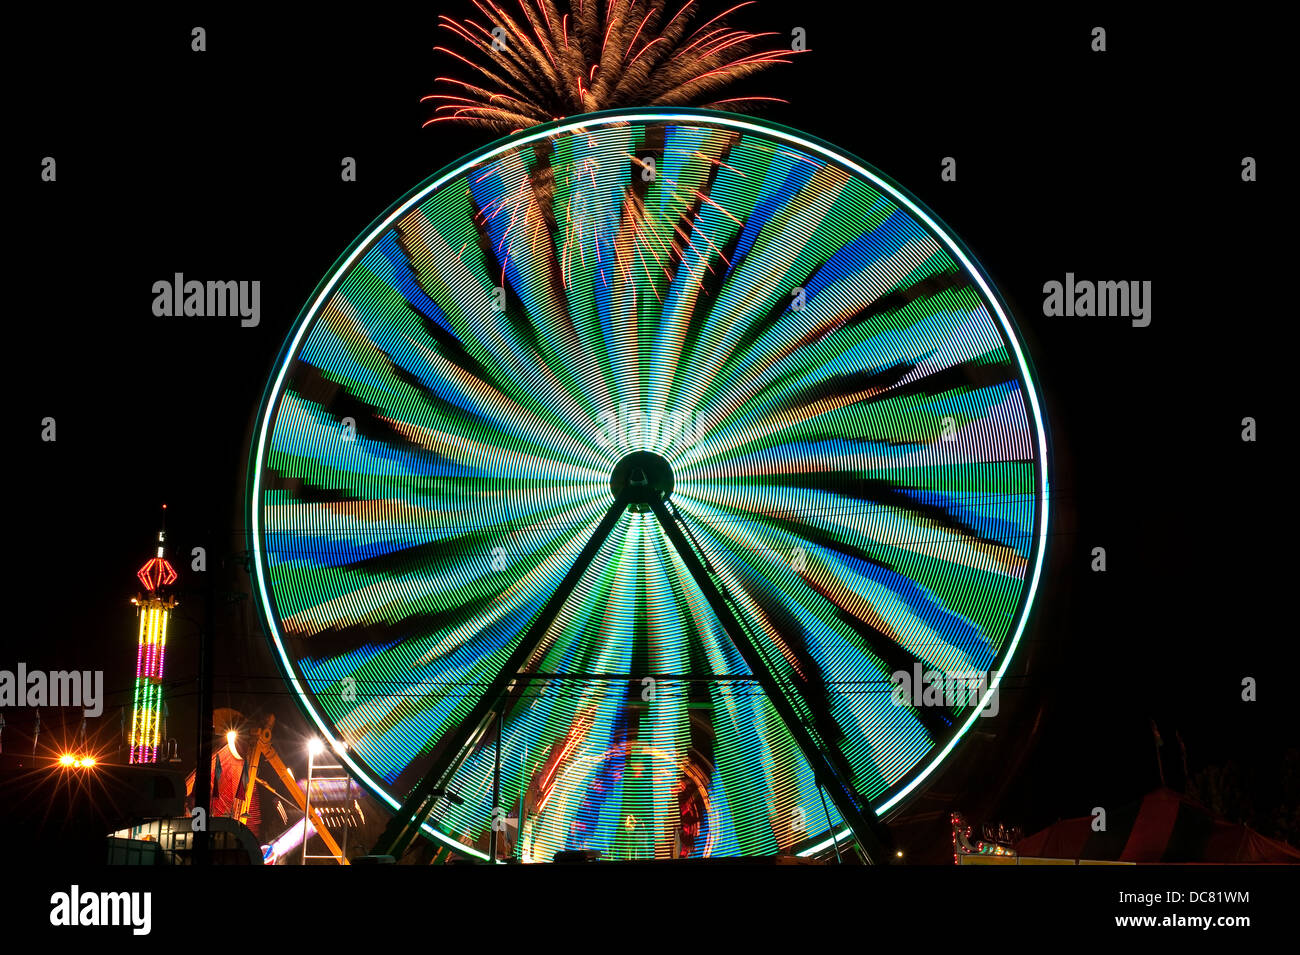 Evergreen State Fair ferris wheel and fireworks - Stock Image